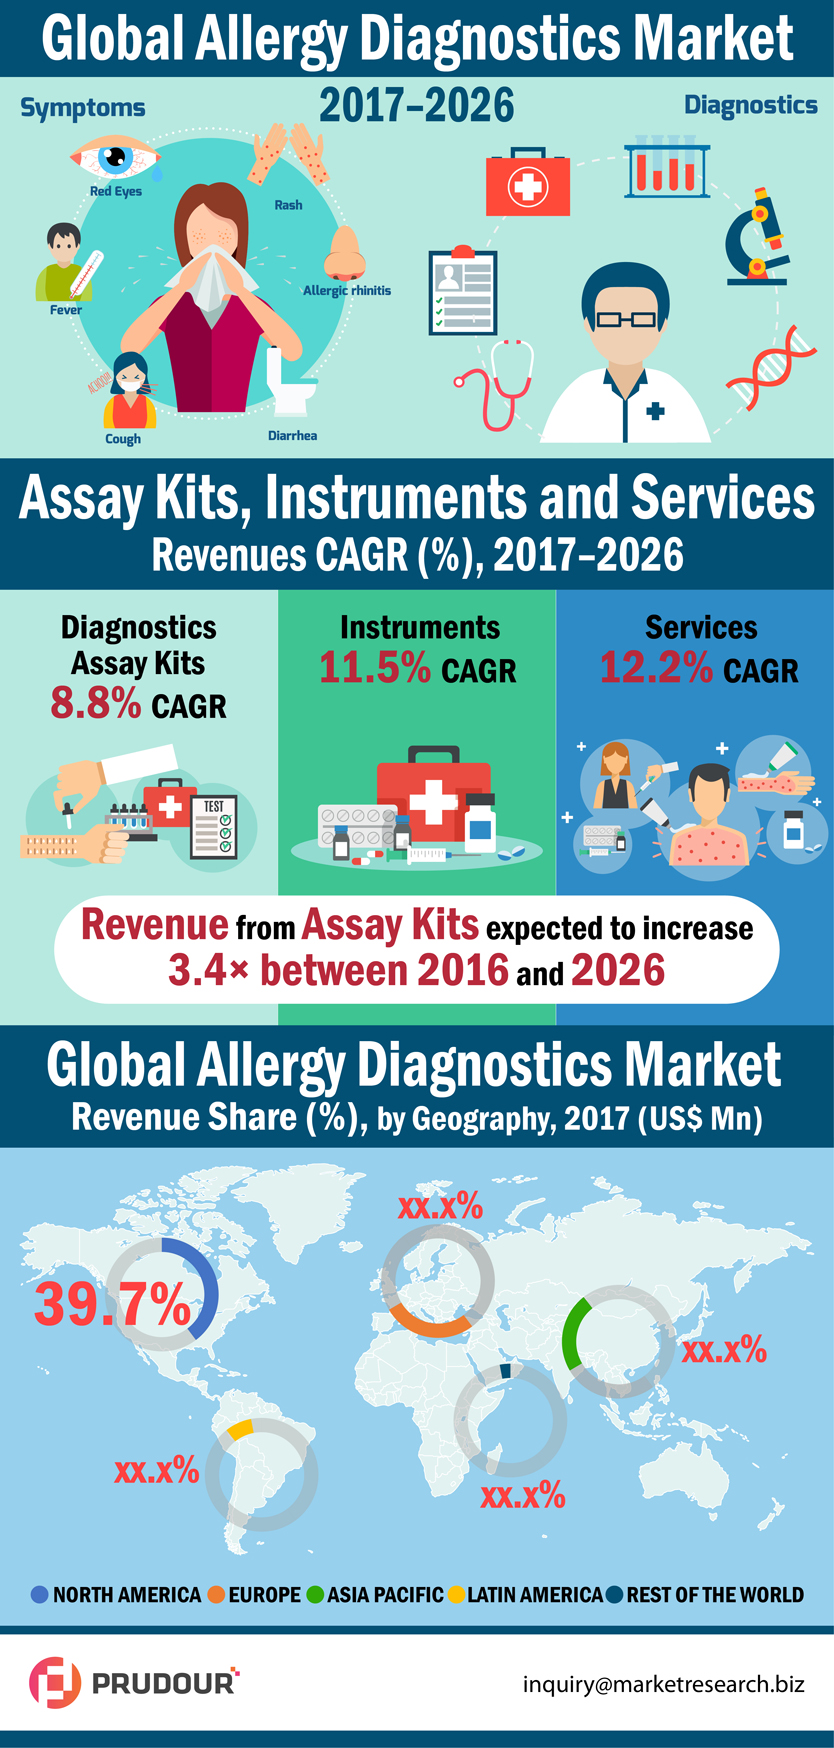 allergy-diagnostics-market-infographic-plaza